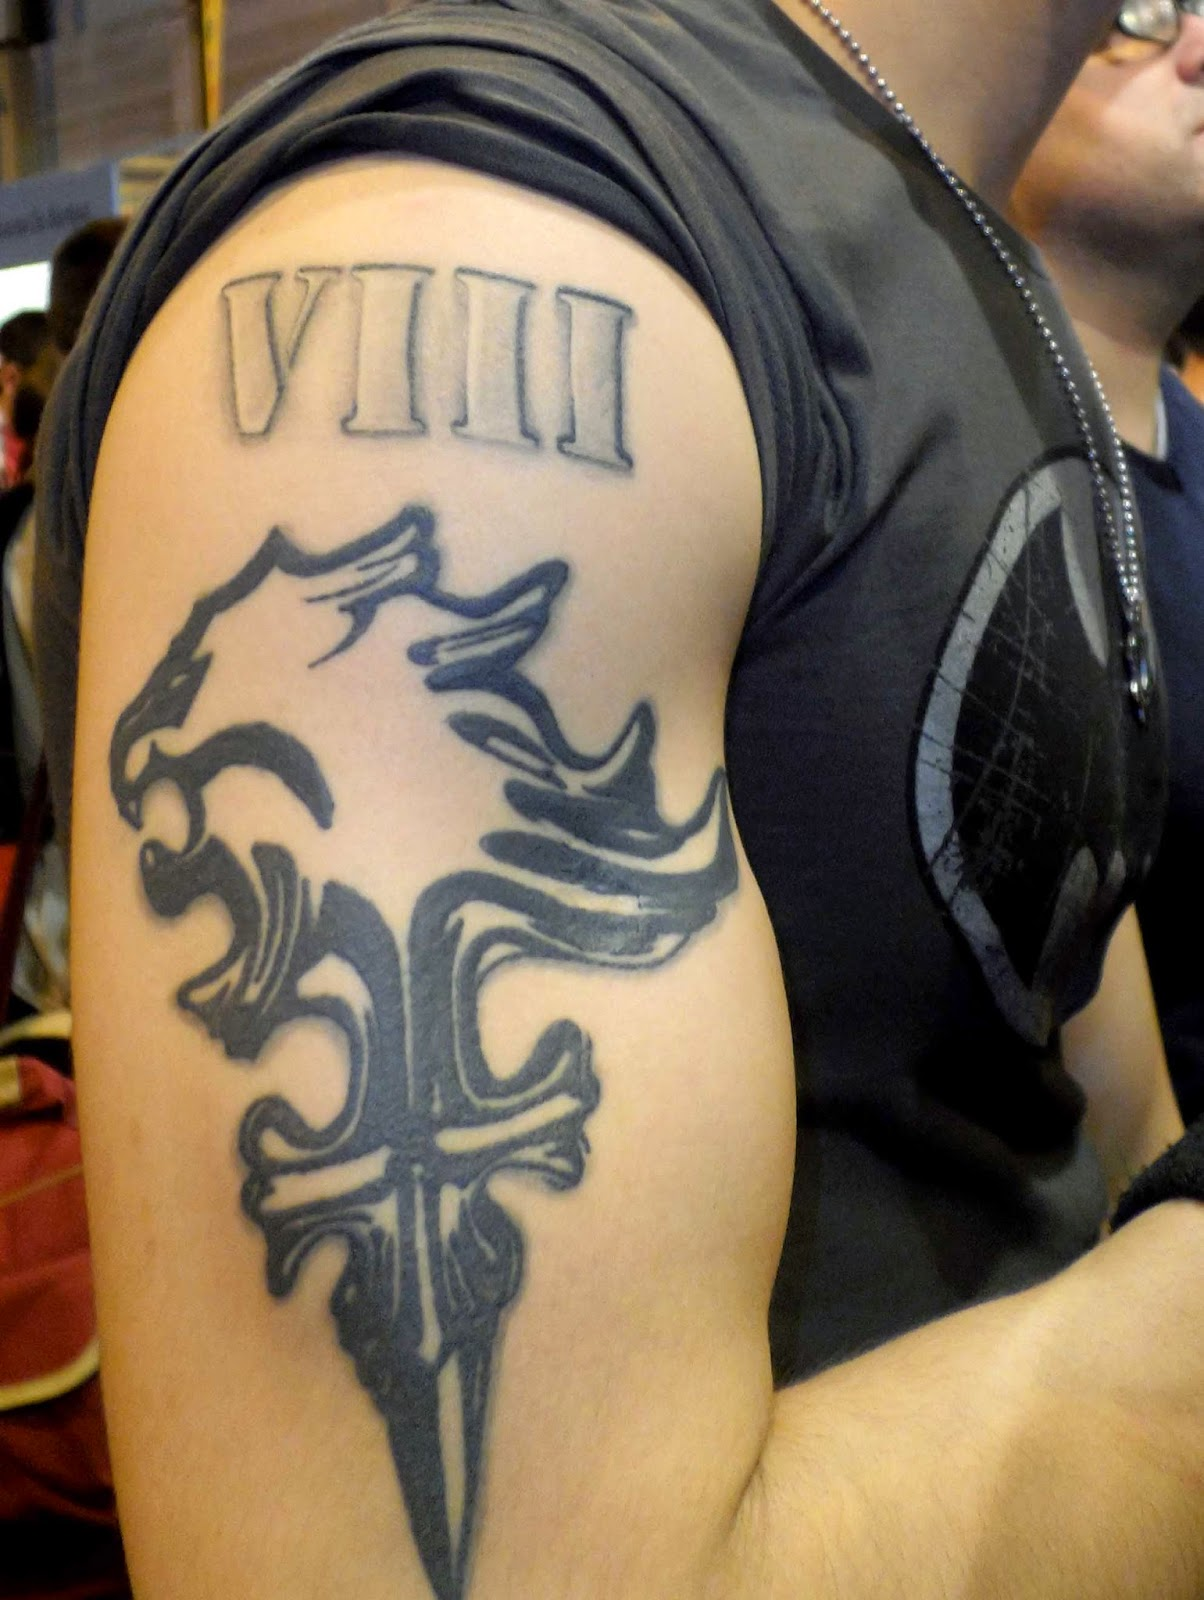 tatoo lionheart final fantasy VIII 8